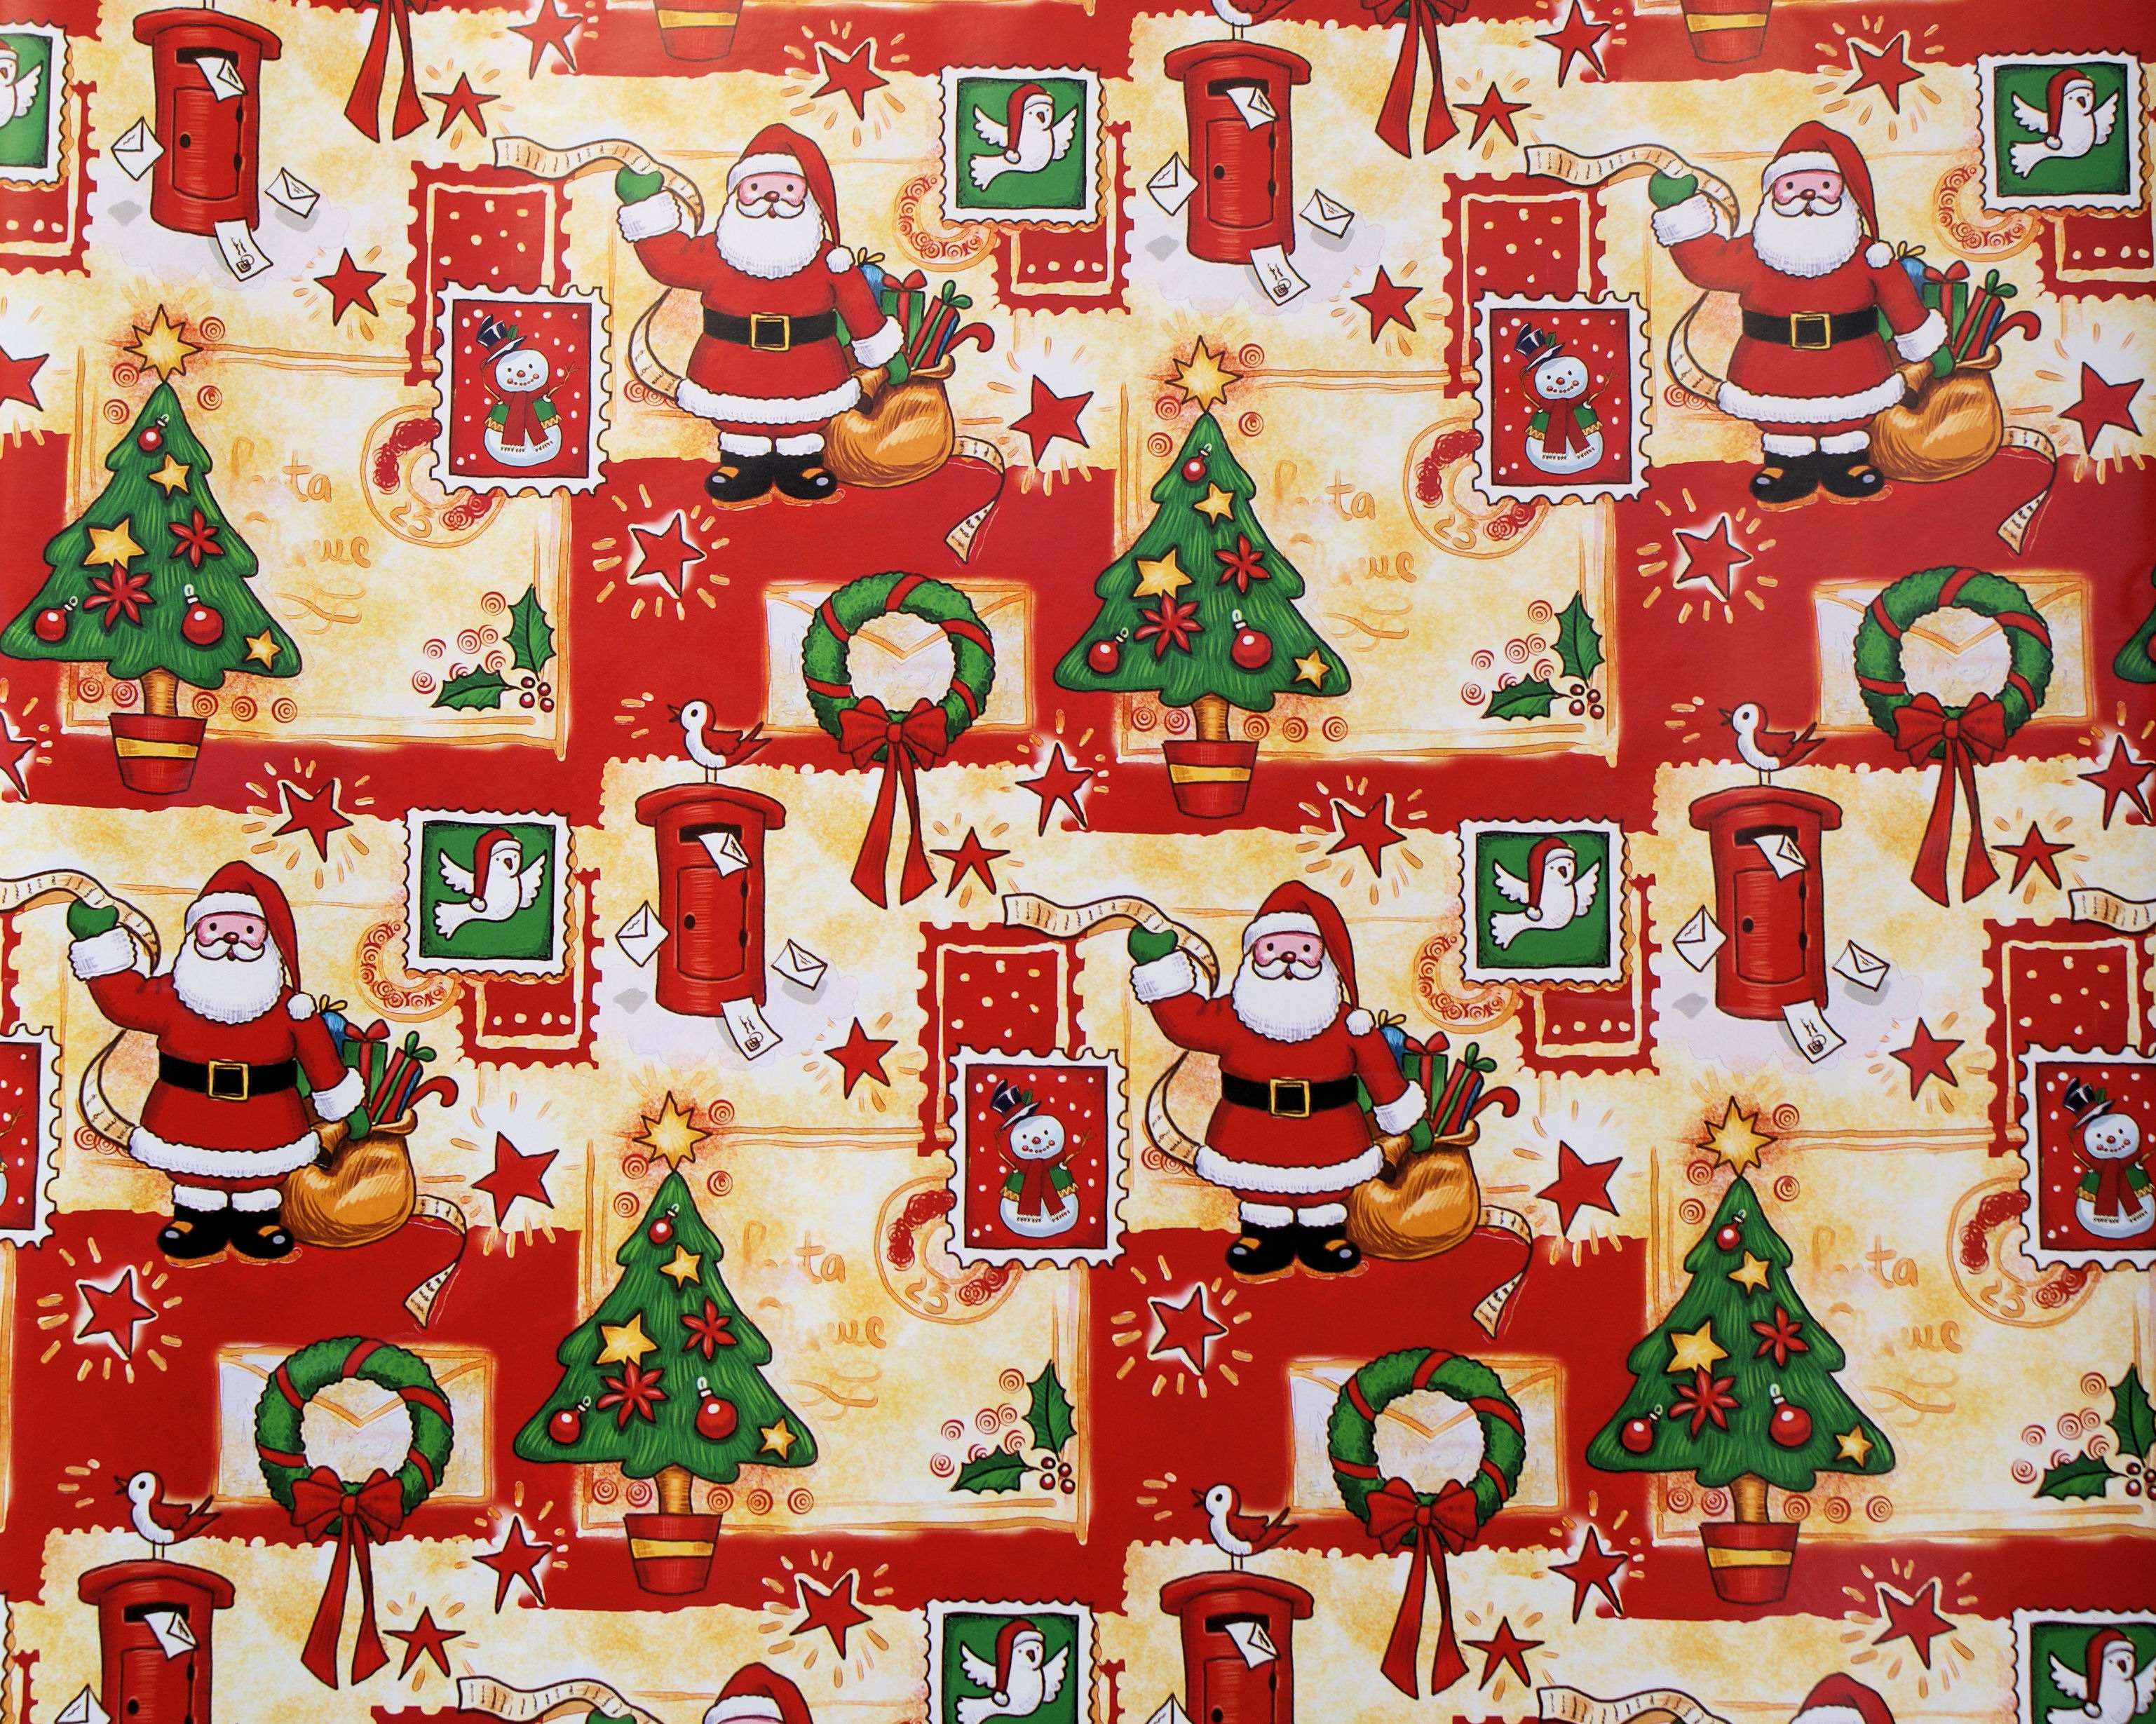 Christmas Gift Wrapper Design.Wrapping Paper